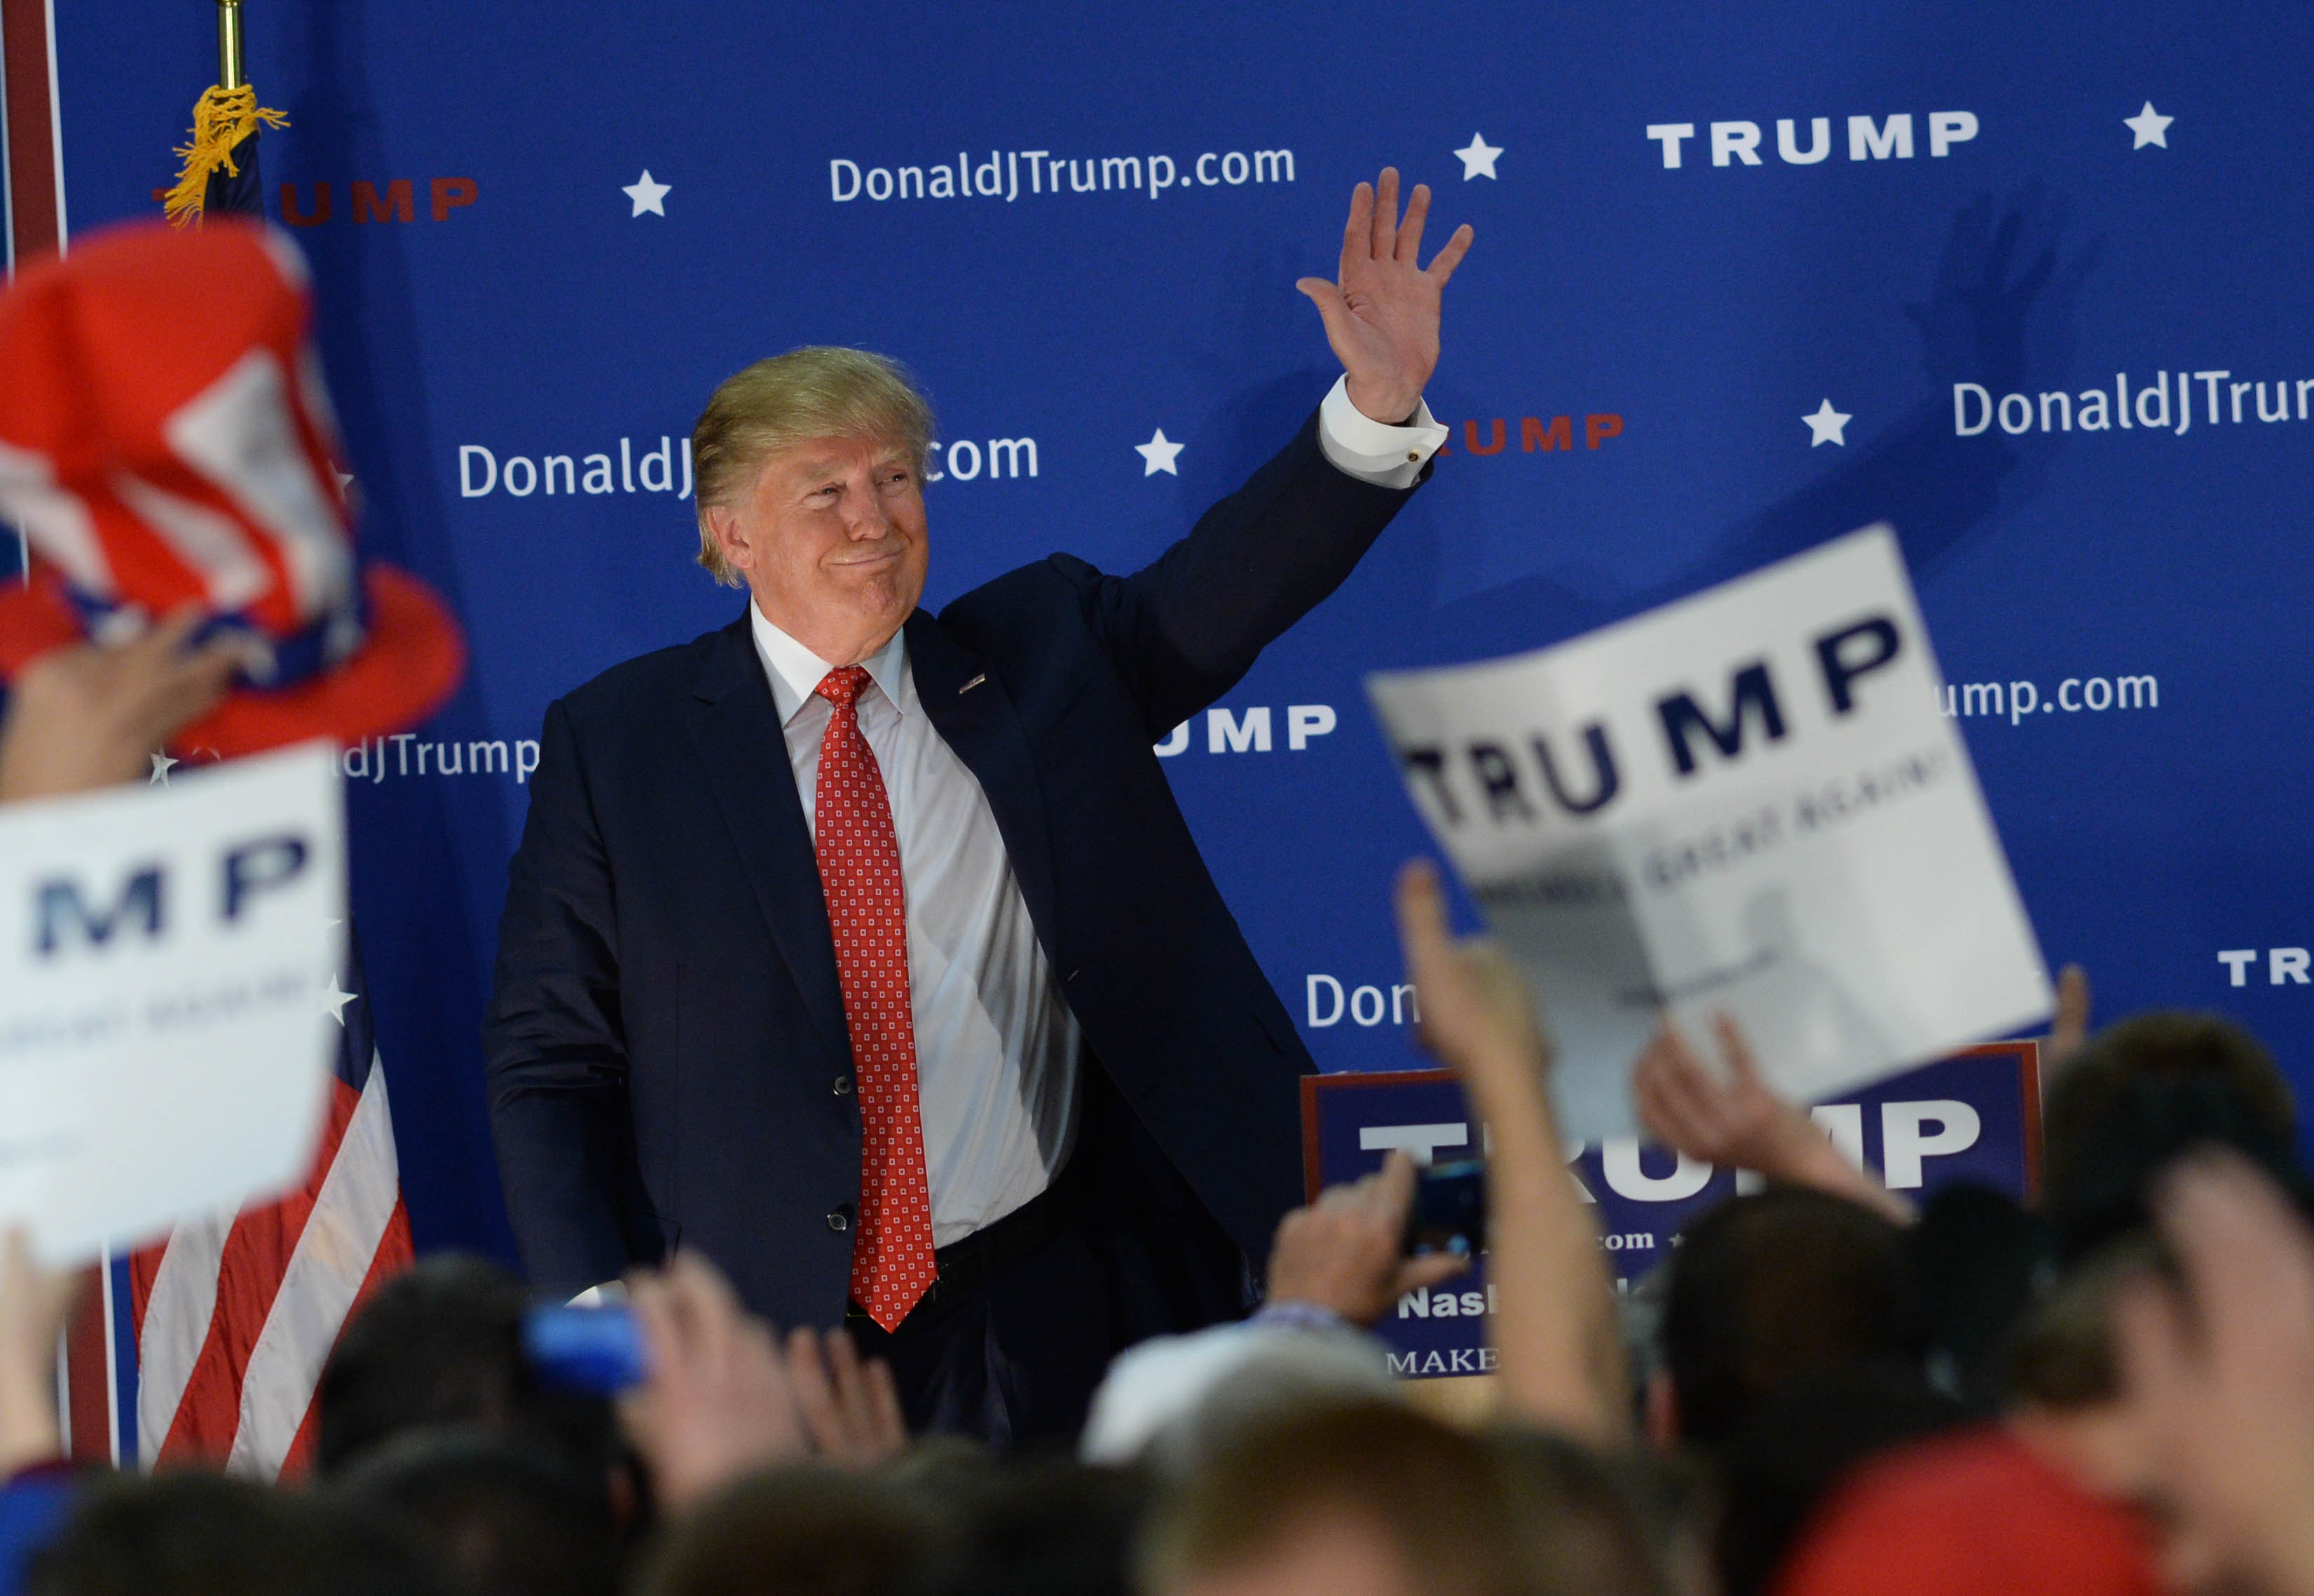 Republican Presidential candidate Donald Trump waves to the crowd after speaking at a rally at Pennichuck Middle School December 28, 2015 in Nashua, New Hampshire. (Photo by Darren McCollester/Getty Images)